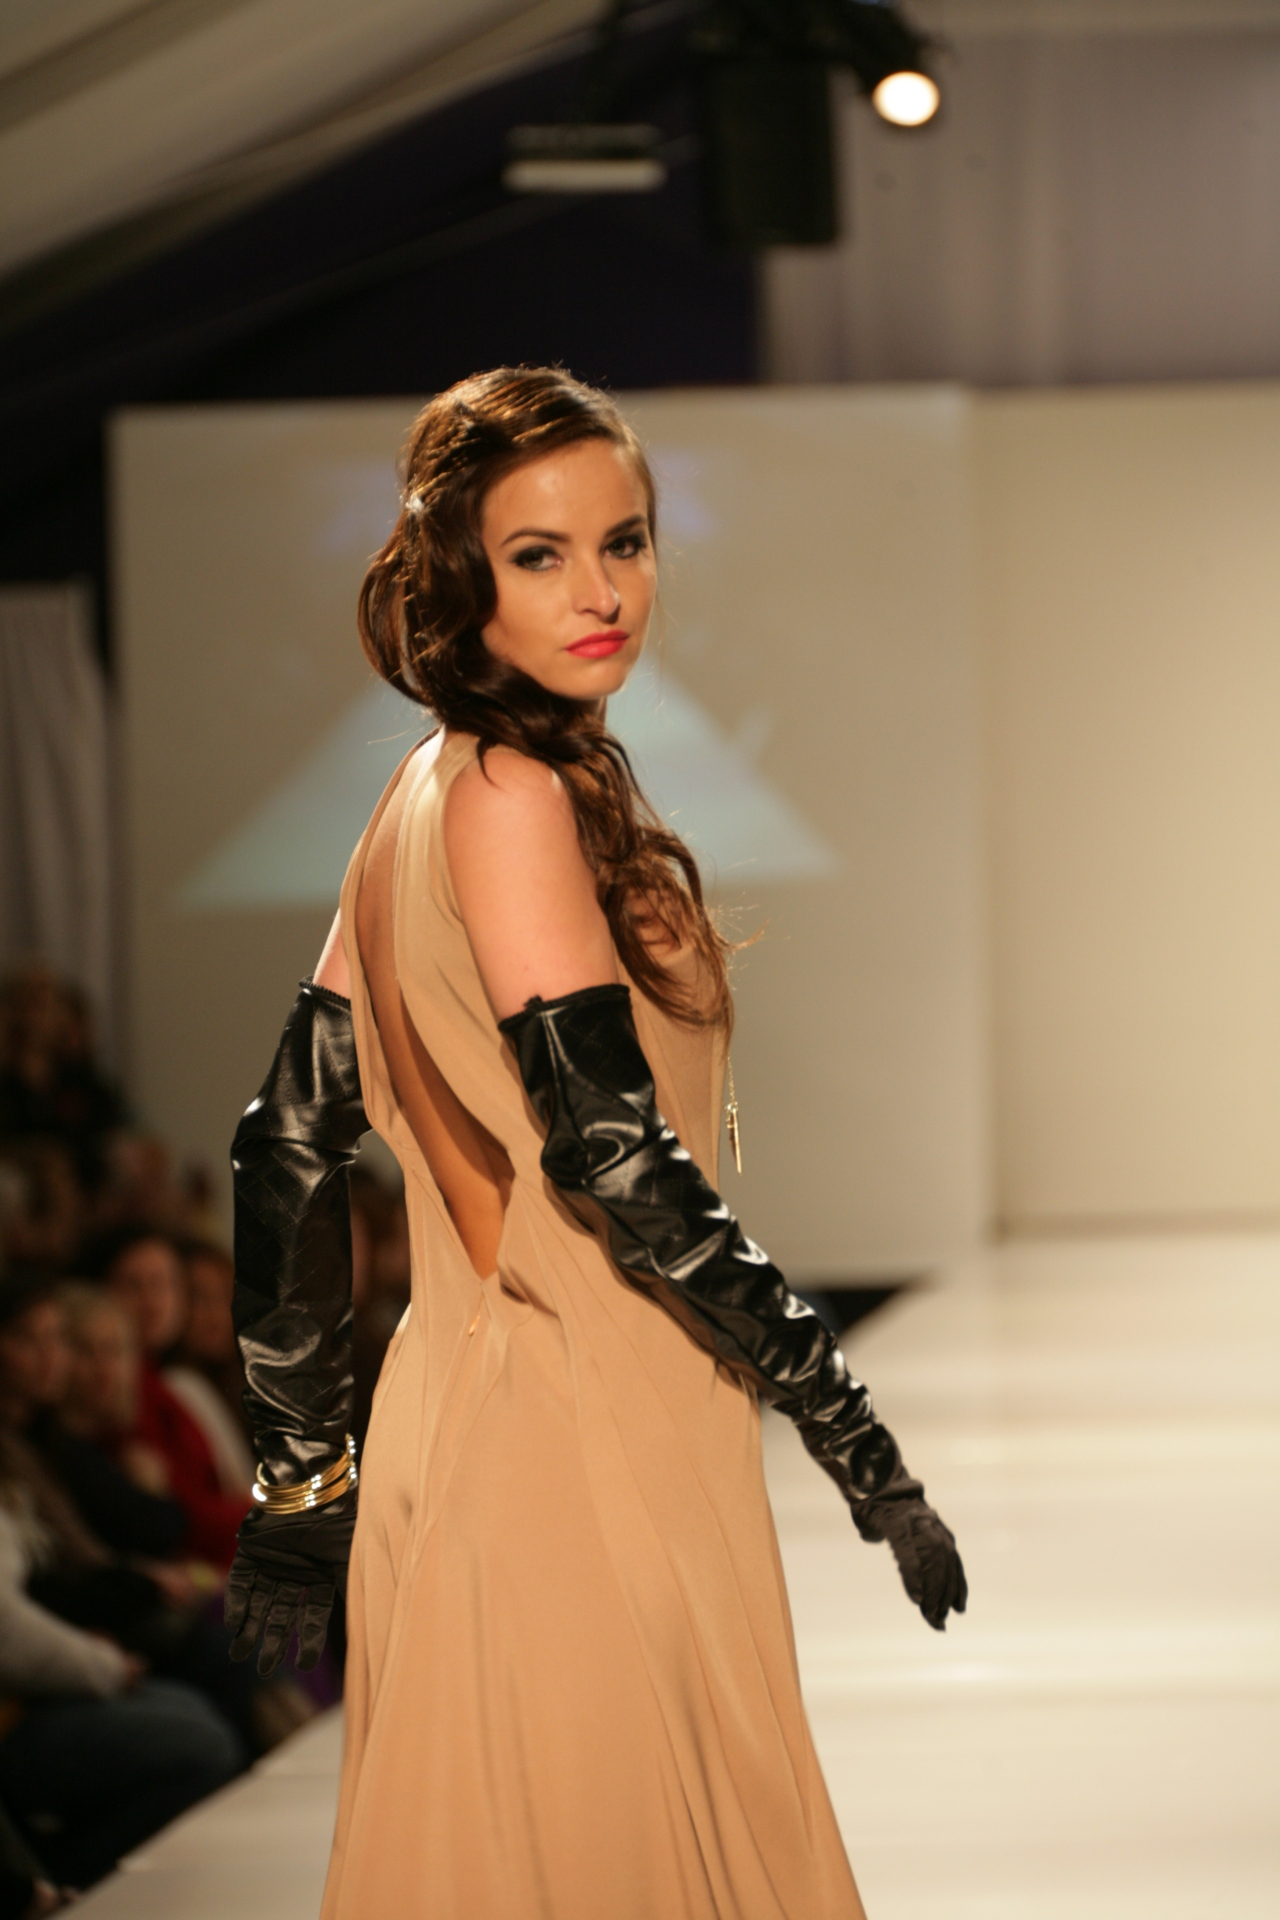 Sarah Winford's Collection | Birmingham Fashion Week 2013Photo Credit: Vintage Inspired Passionista